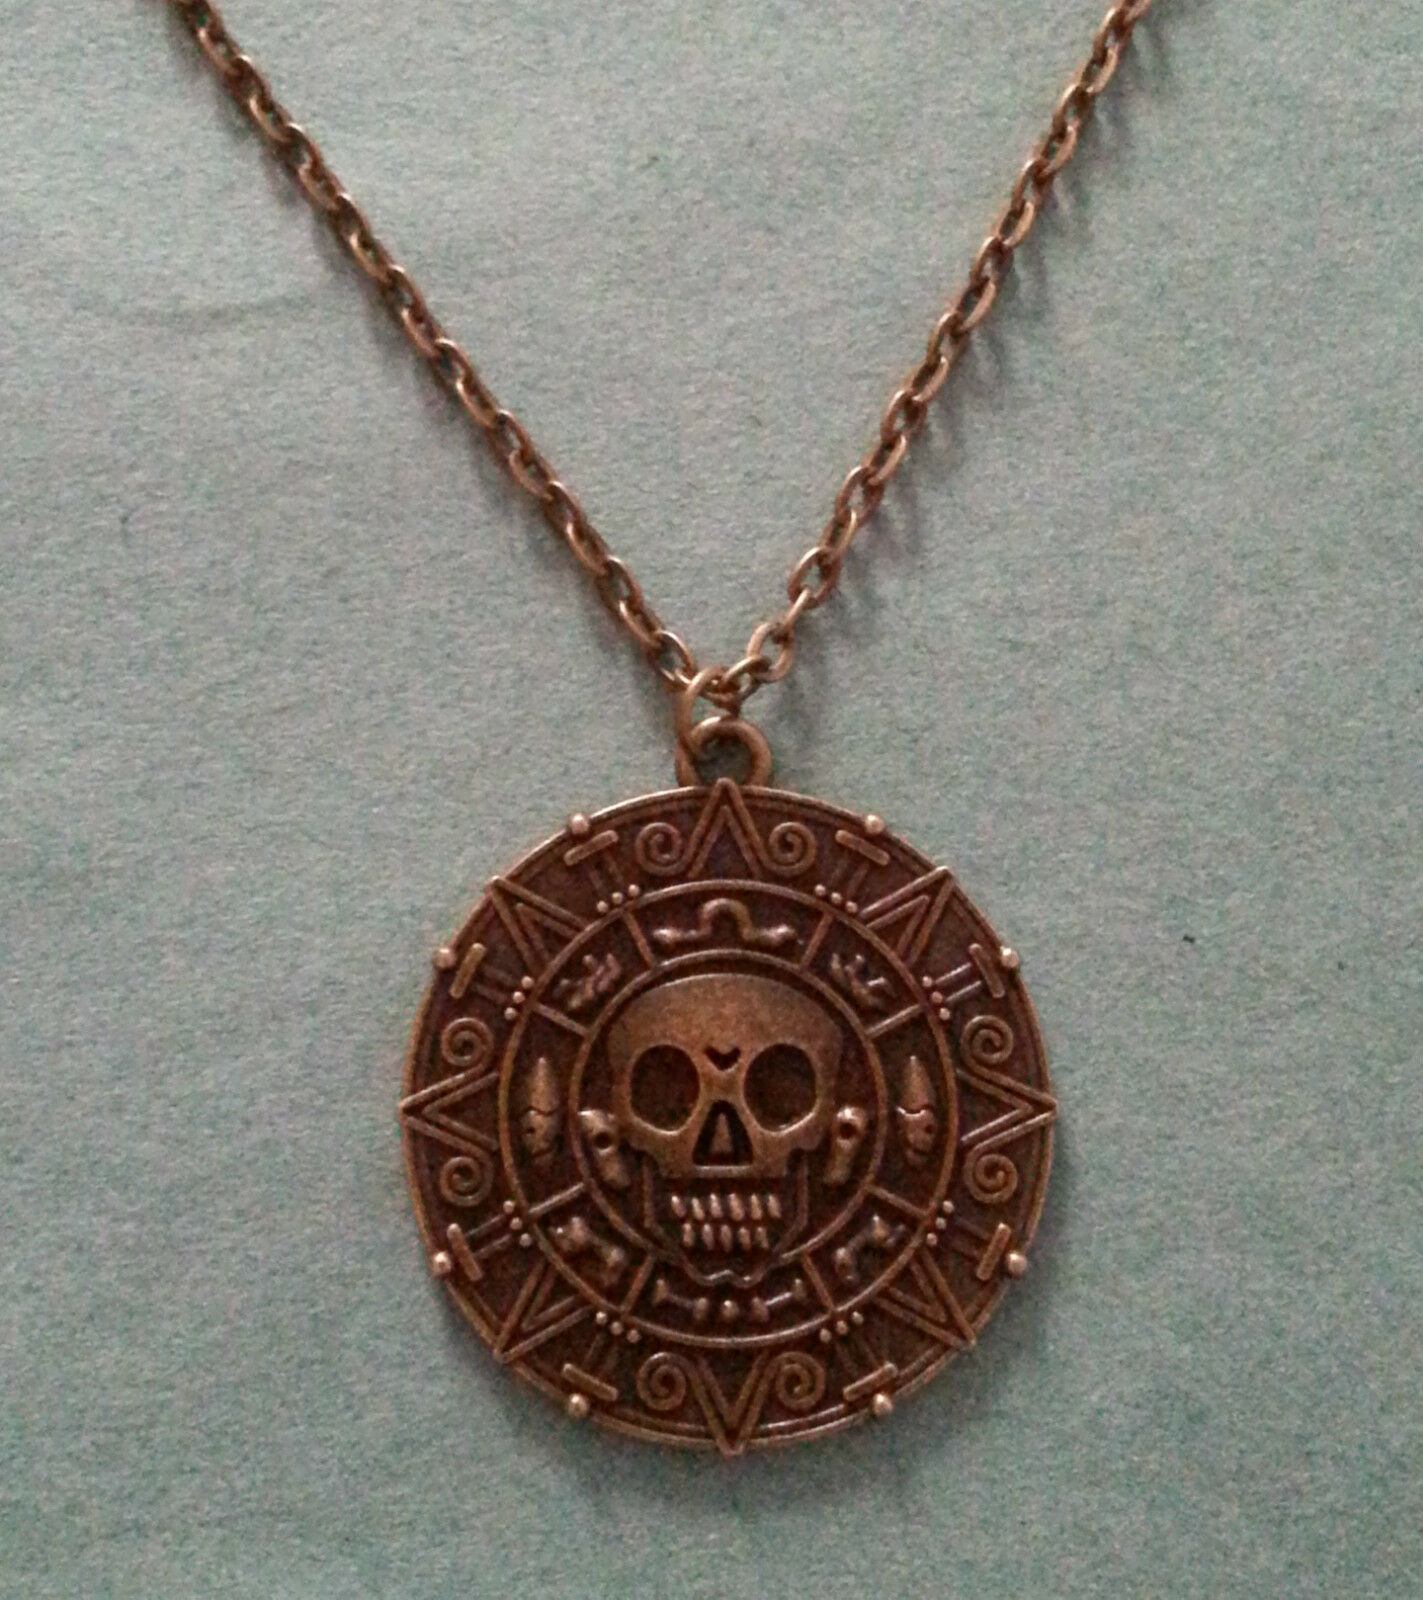 Pirates Of The Caribbean Aztec Coin Skull Medallion. Wood Wedding Rings. Pure Gold Pendant. Gold Filled Bracelet. Mother's Day Ankle Bracelet. Tassel Earrings. Country Girl Wedding Rings. Celtic Jewelry. Sea Necklace